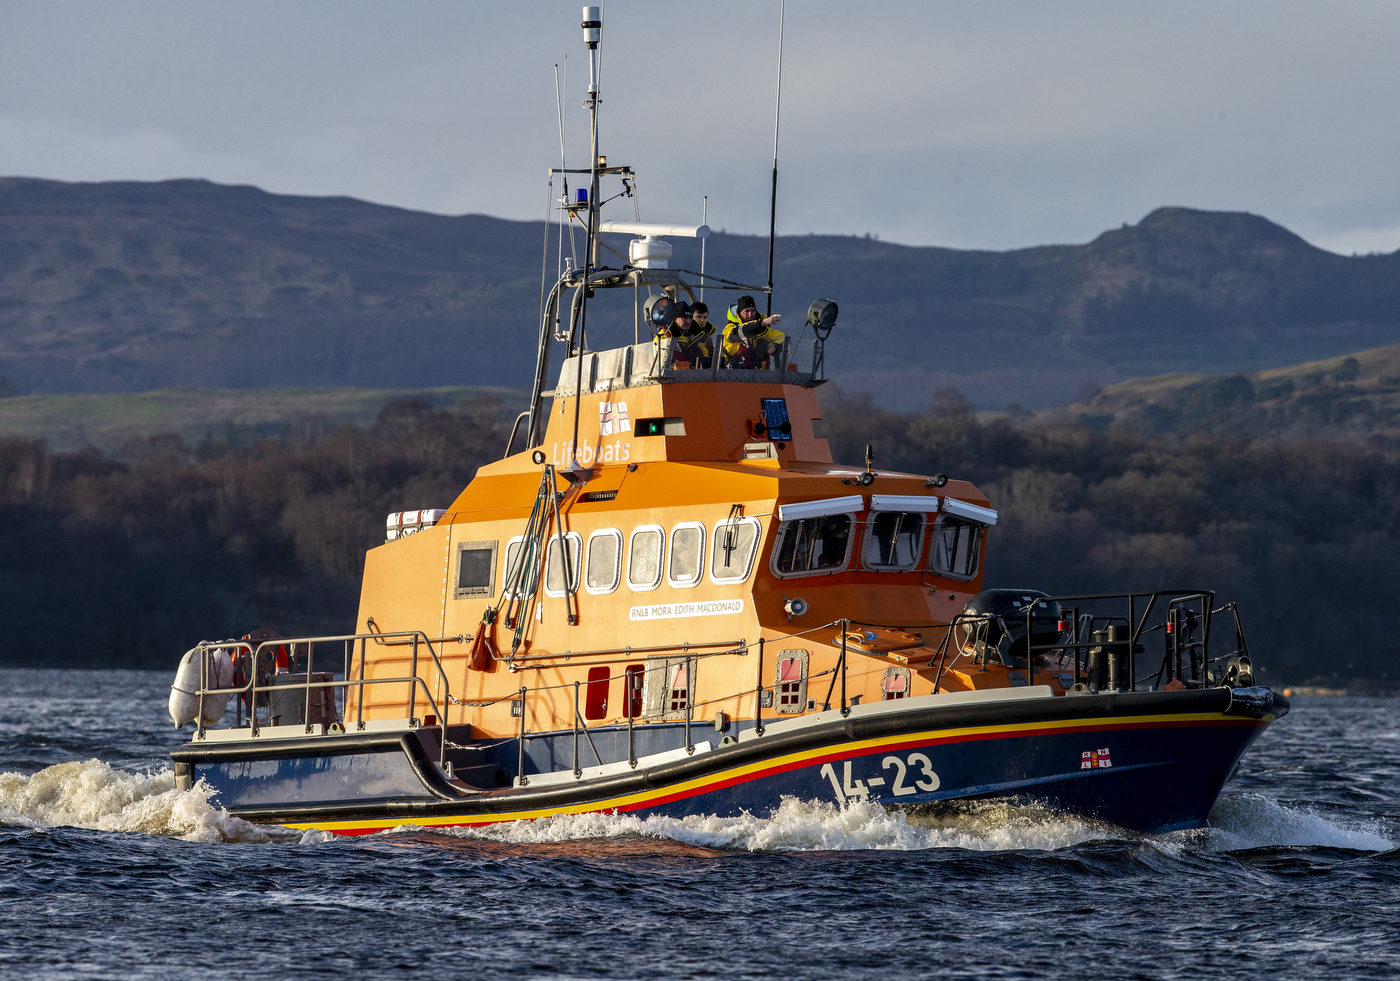 Oban Lifeboat searching for missing kayakers